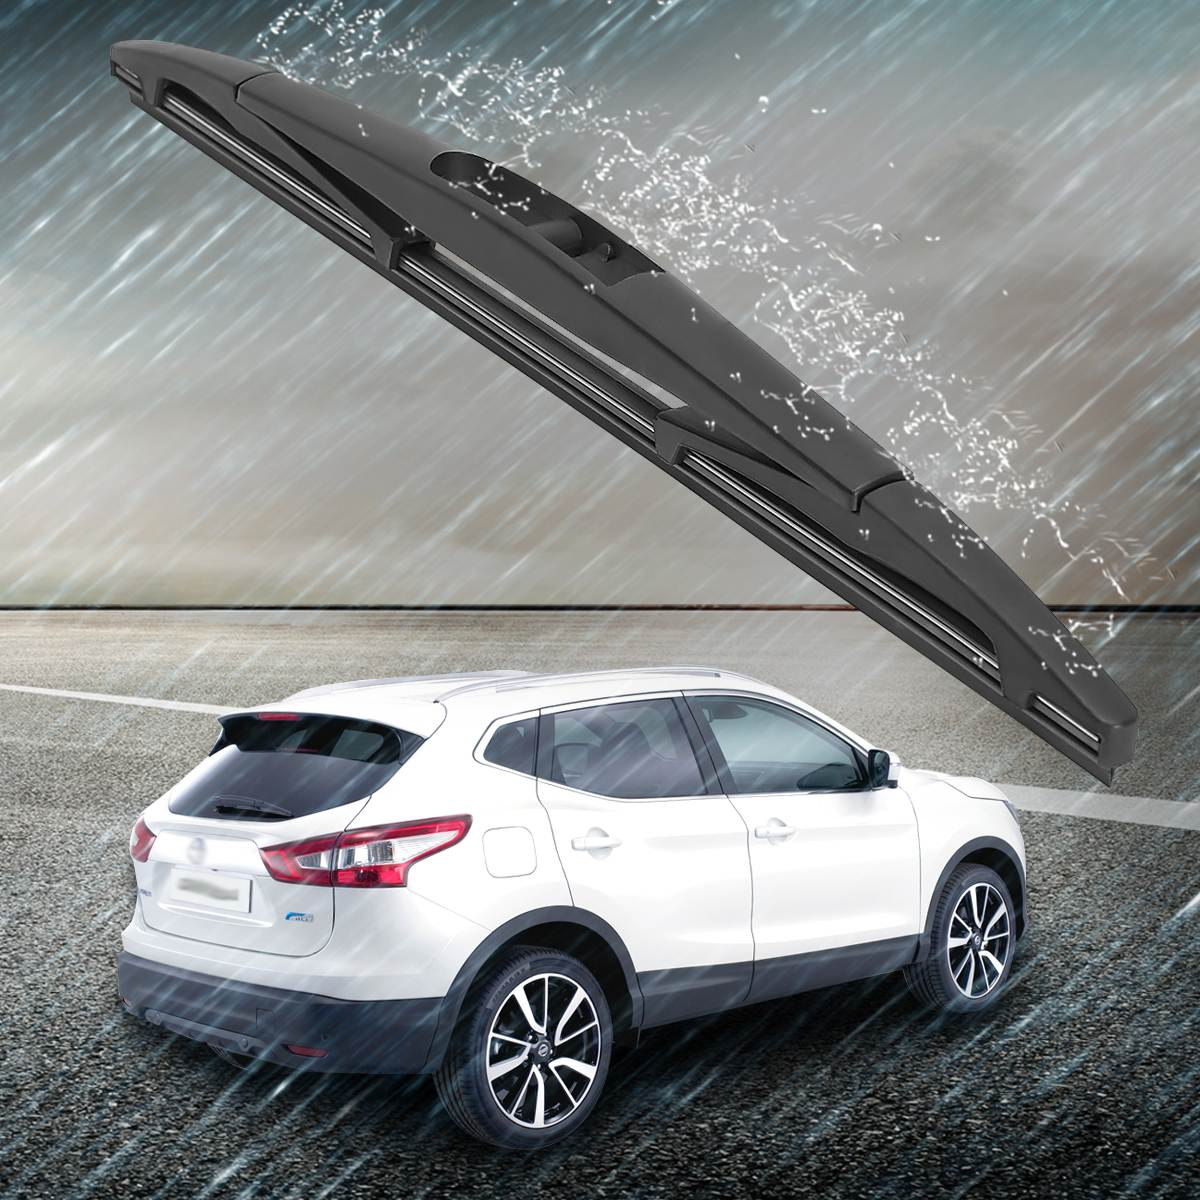 New Rear Windshield Frame Wiper Blade For Nissan Pathfinder Xterra Murano MDX ...